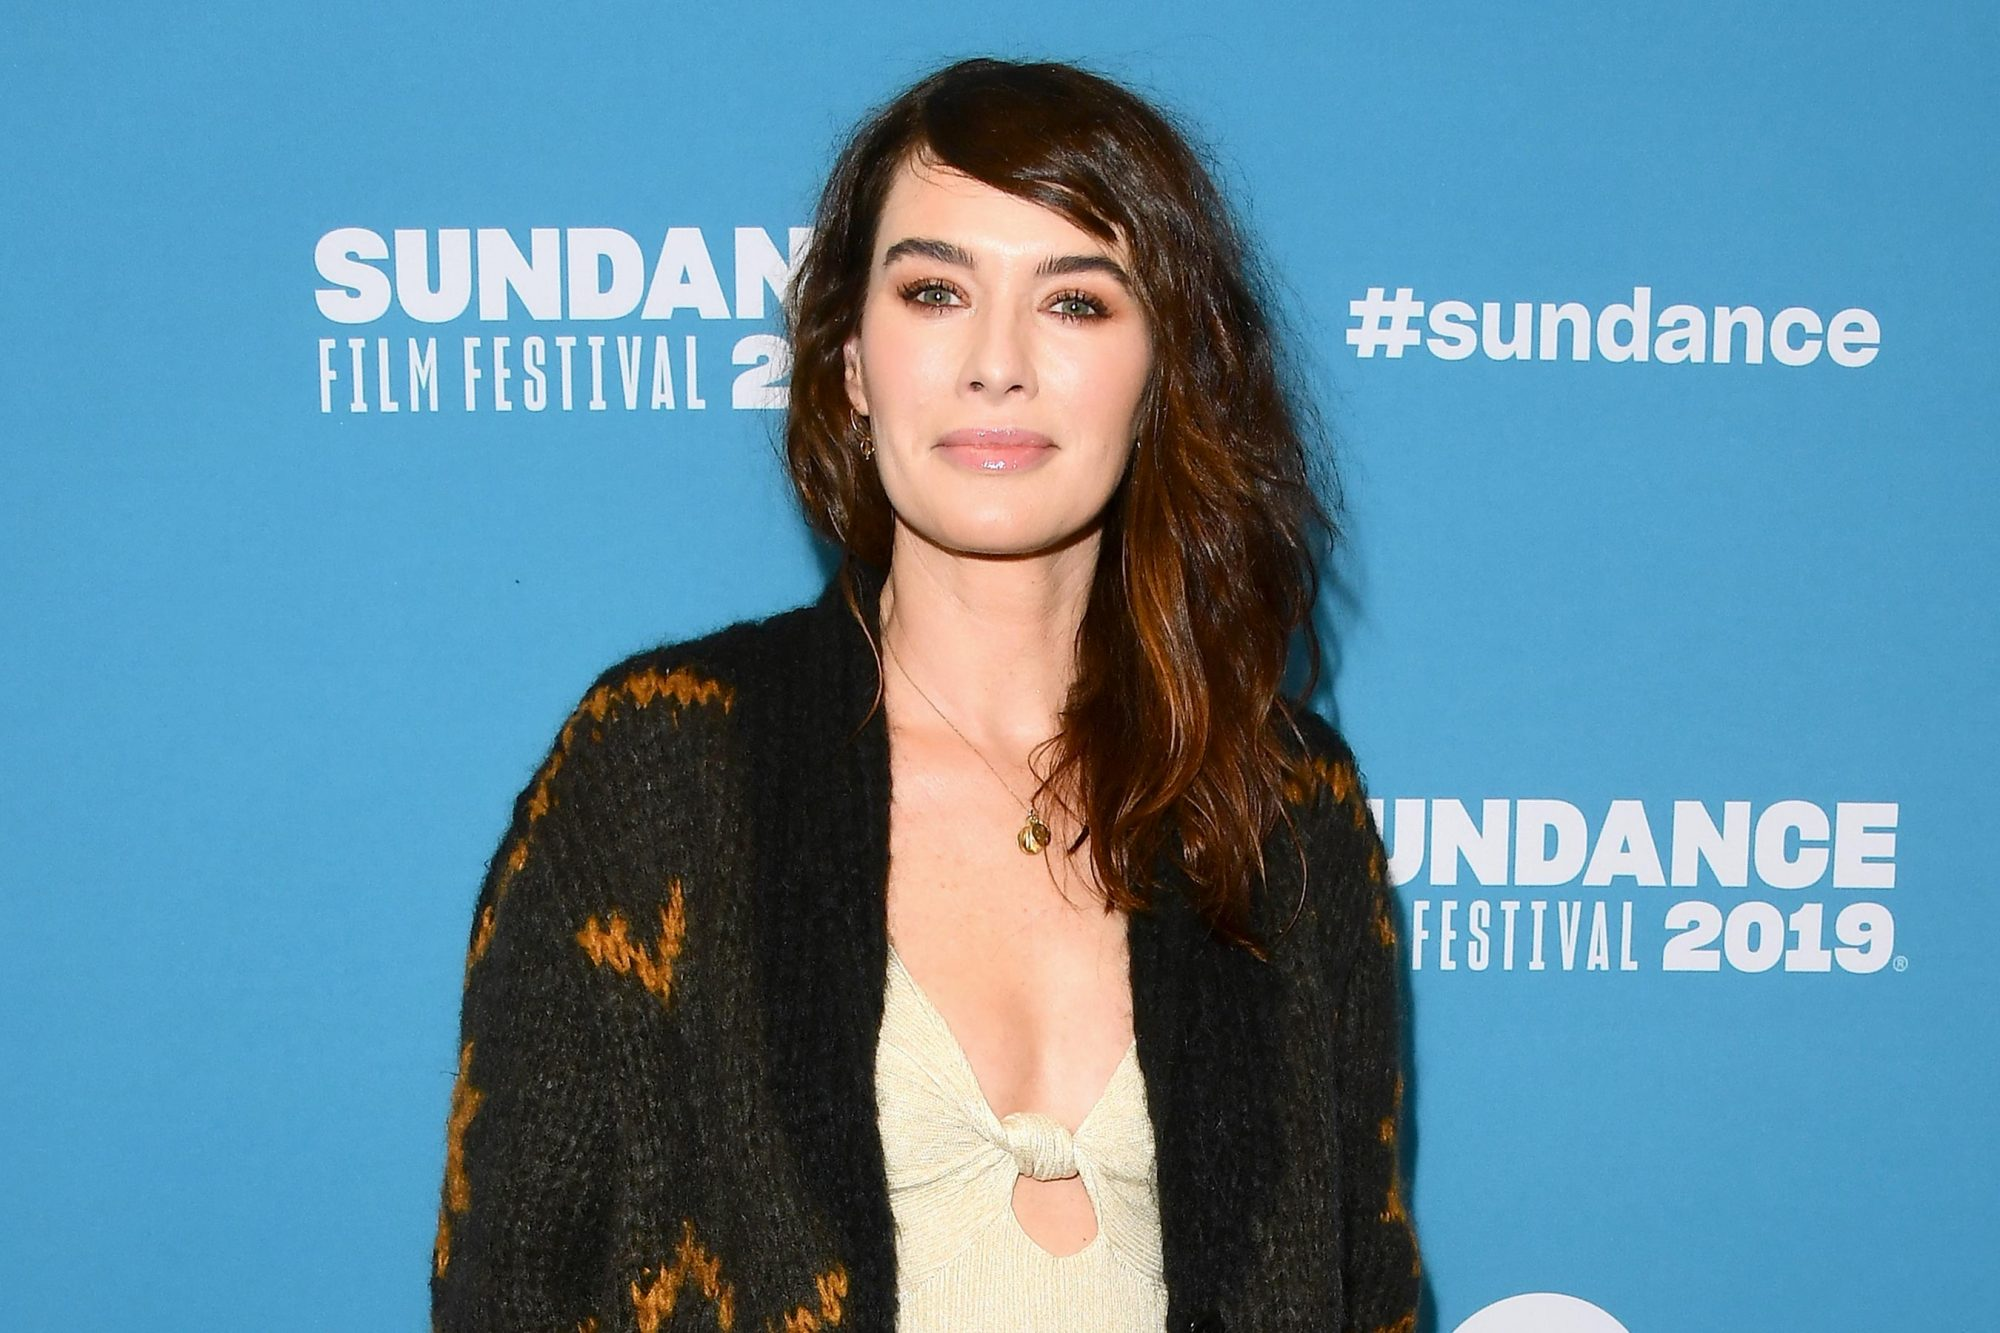 """PARK CITY, UT - JANUARY 28: Lena Headey attends the surprise screening of """"Fighting With My Family"""" during the 2019 Sundance Film Festival at The Ray on January 28, 2019 in Park City, Utah. (Photo by George Pimentel/Getty Images)"""